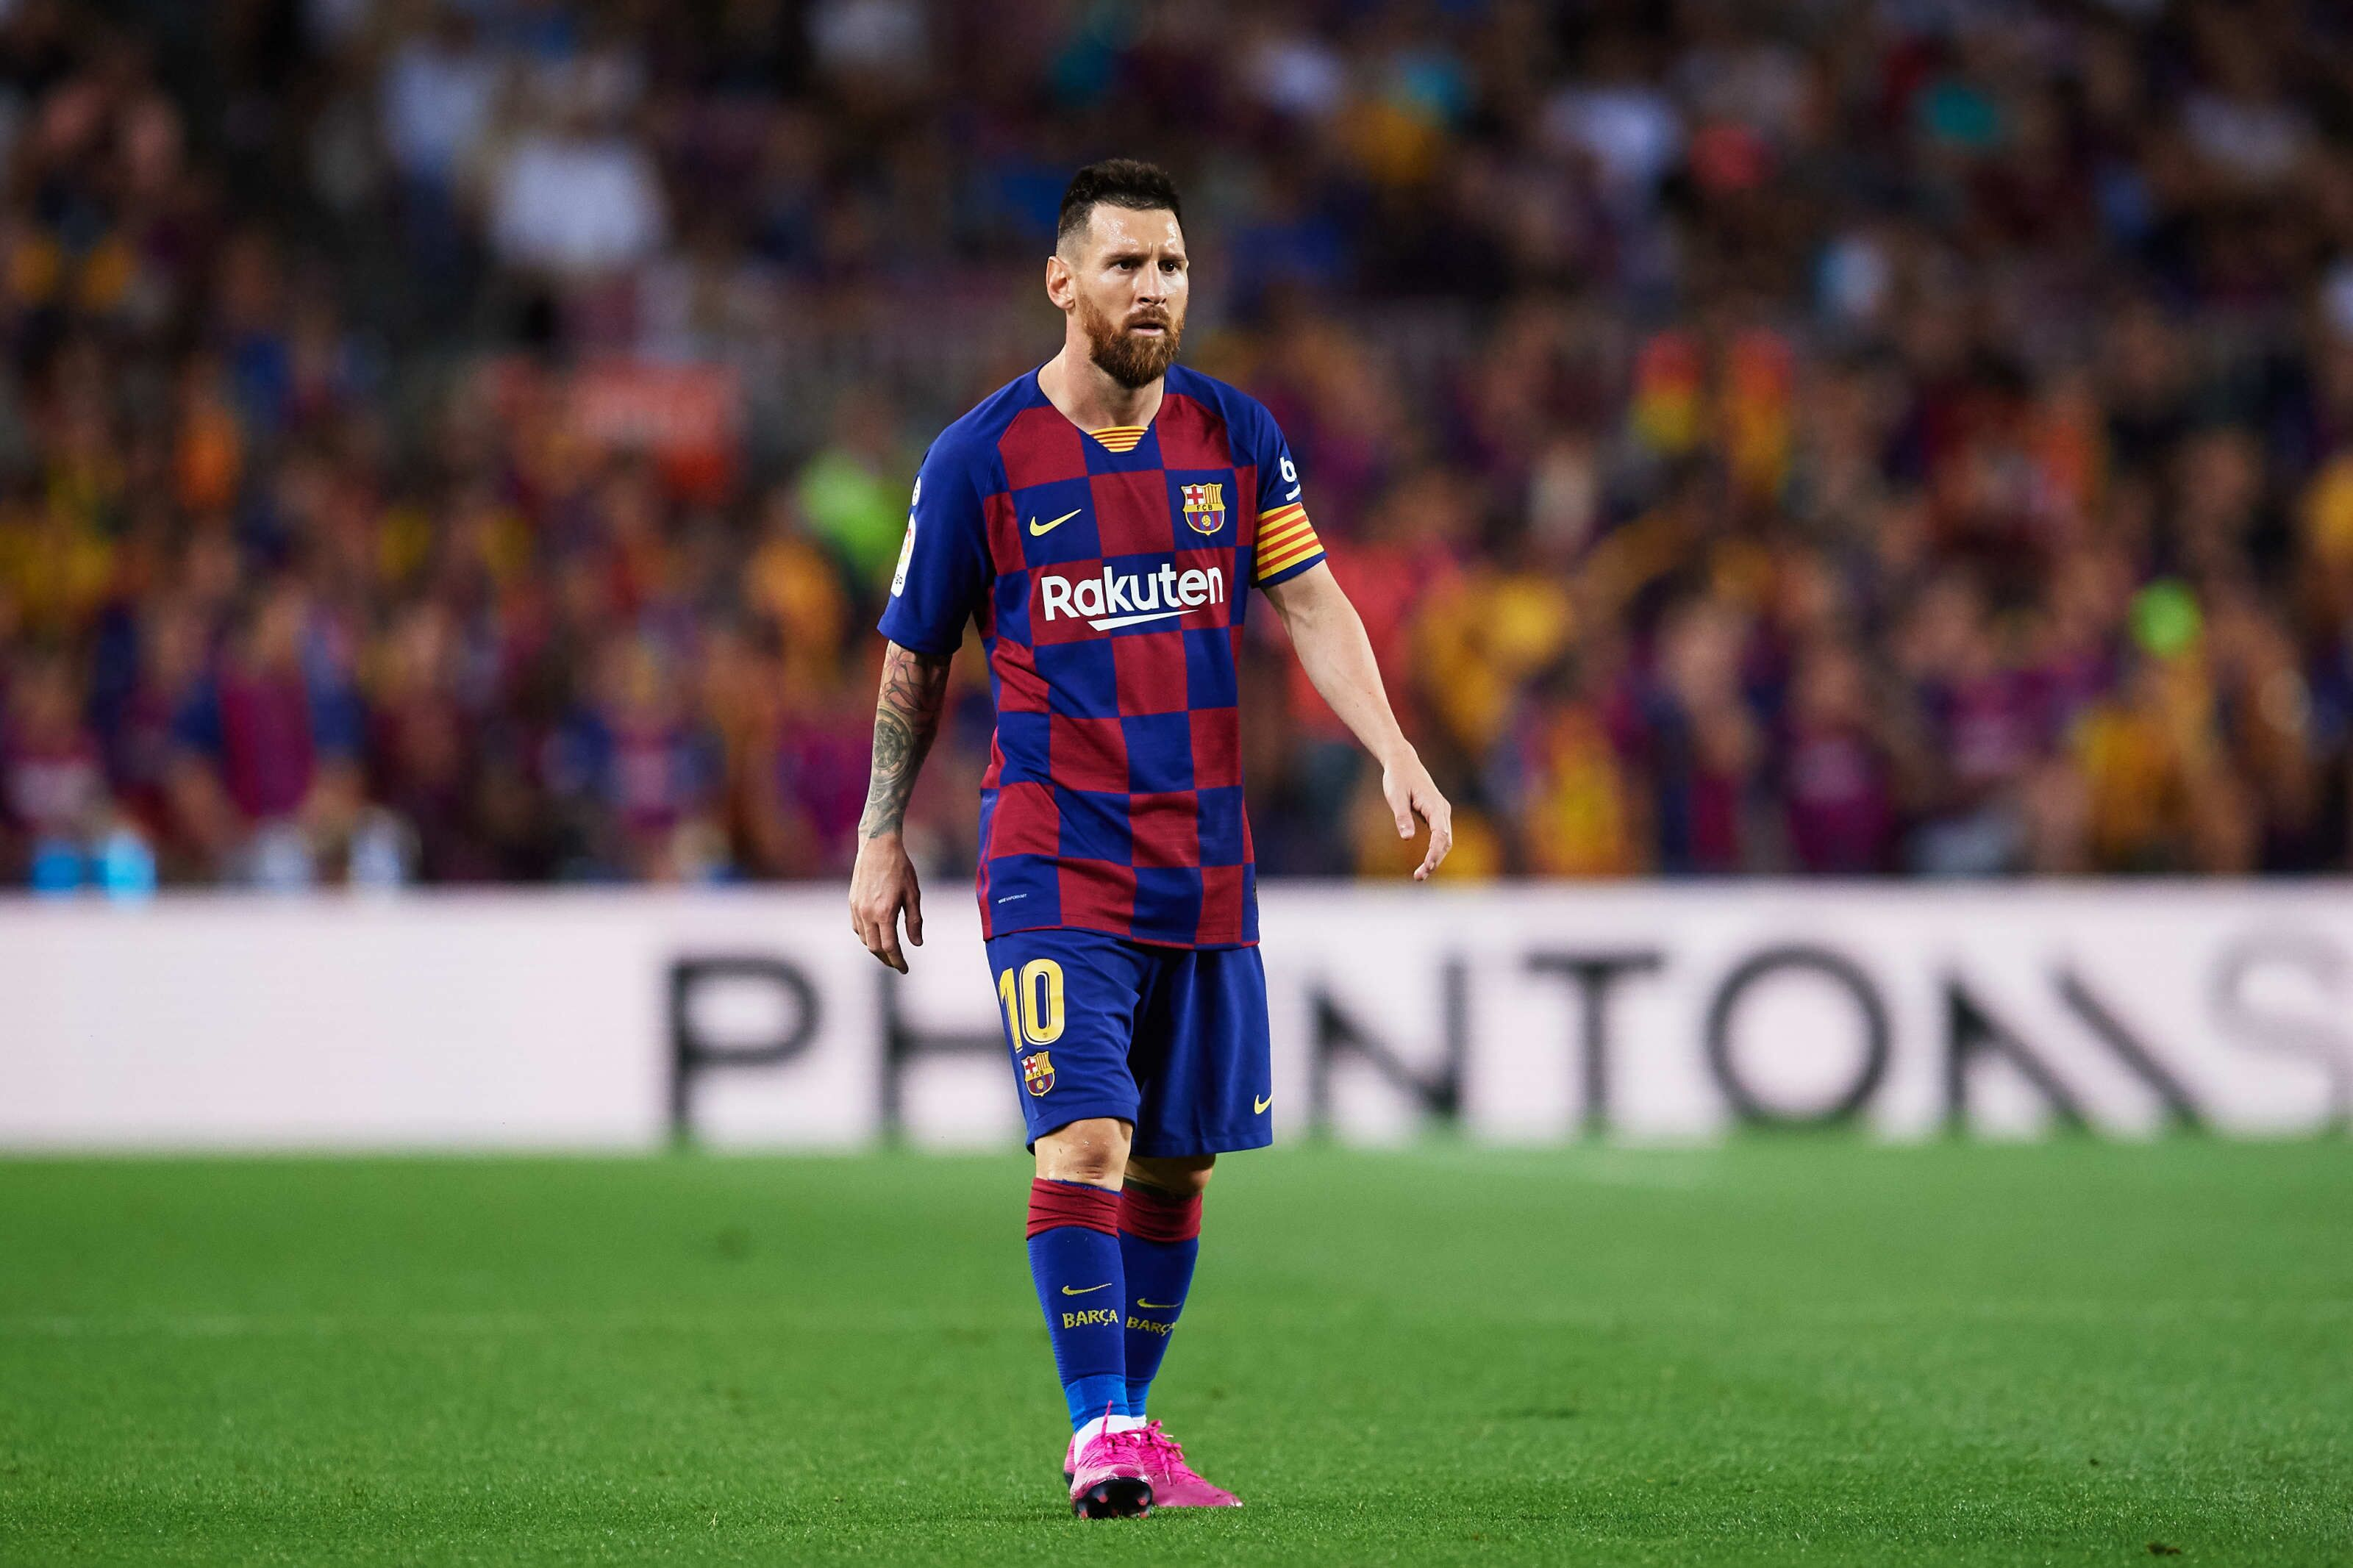 Lionel Messi wants Barcelona to sign Real Madrid's midfield maestro